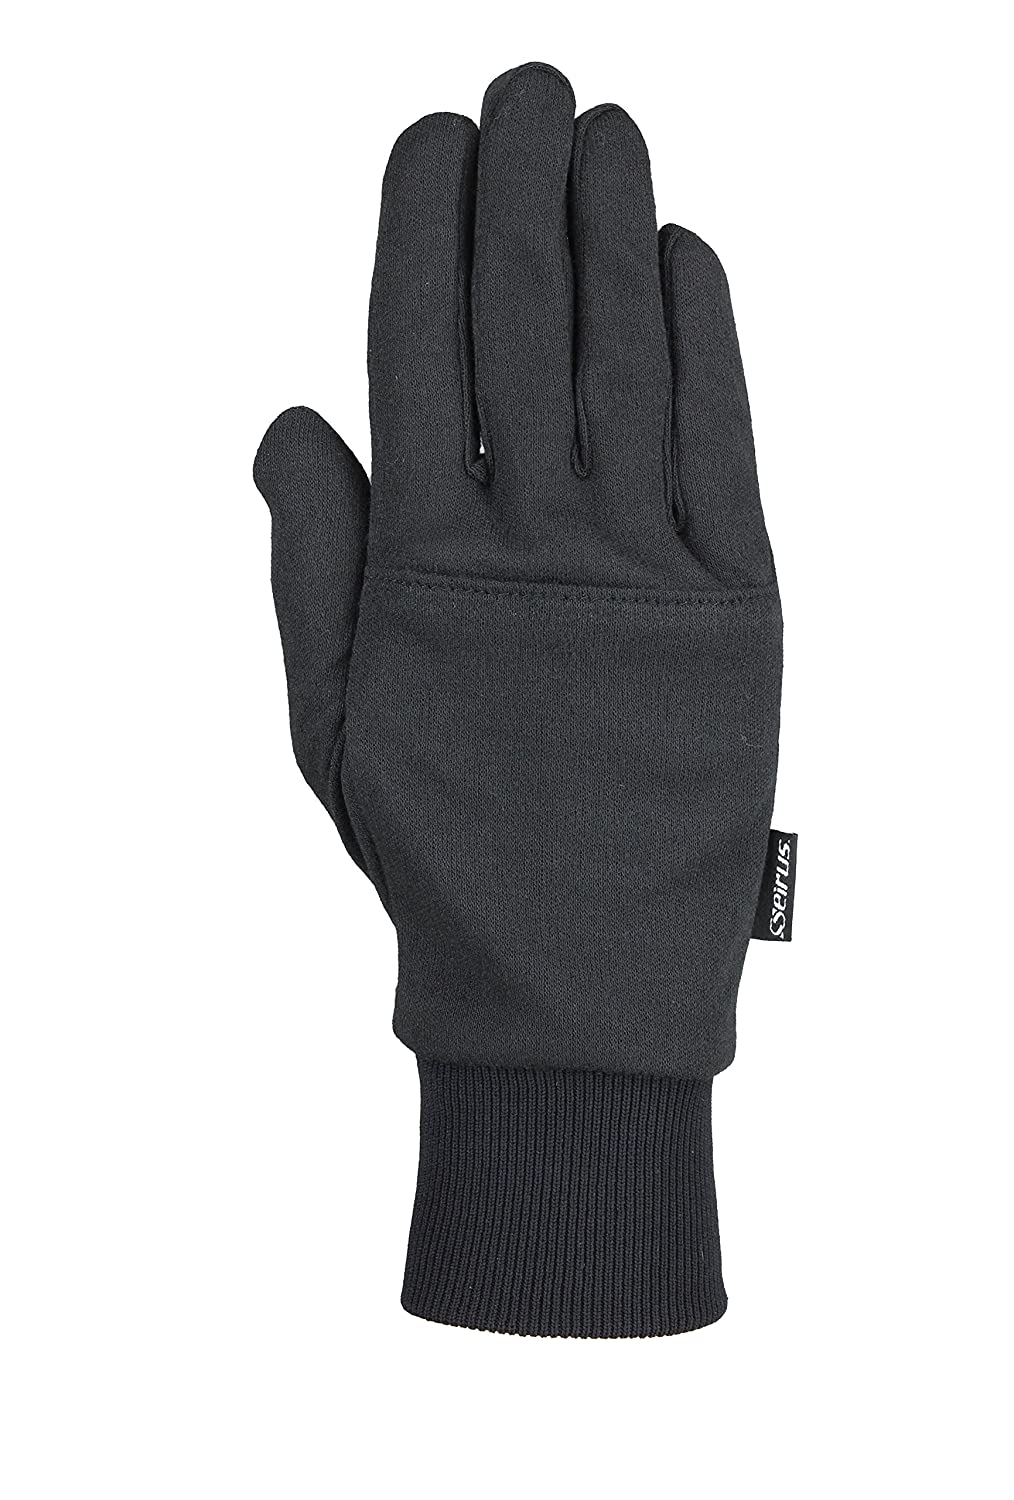 Seirus Innovation Thermax Glove Liner